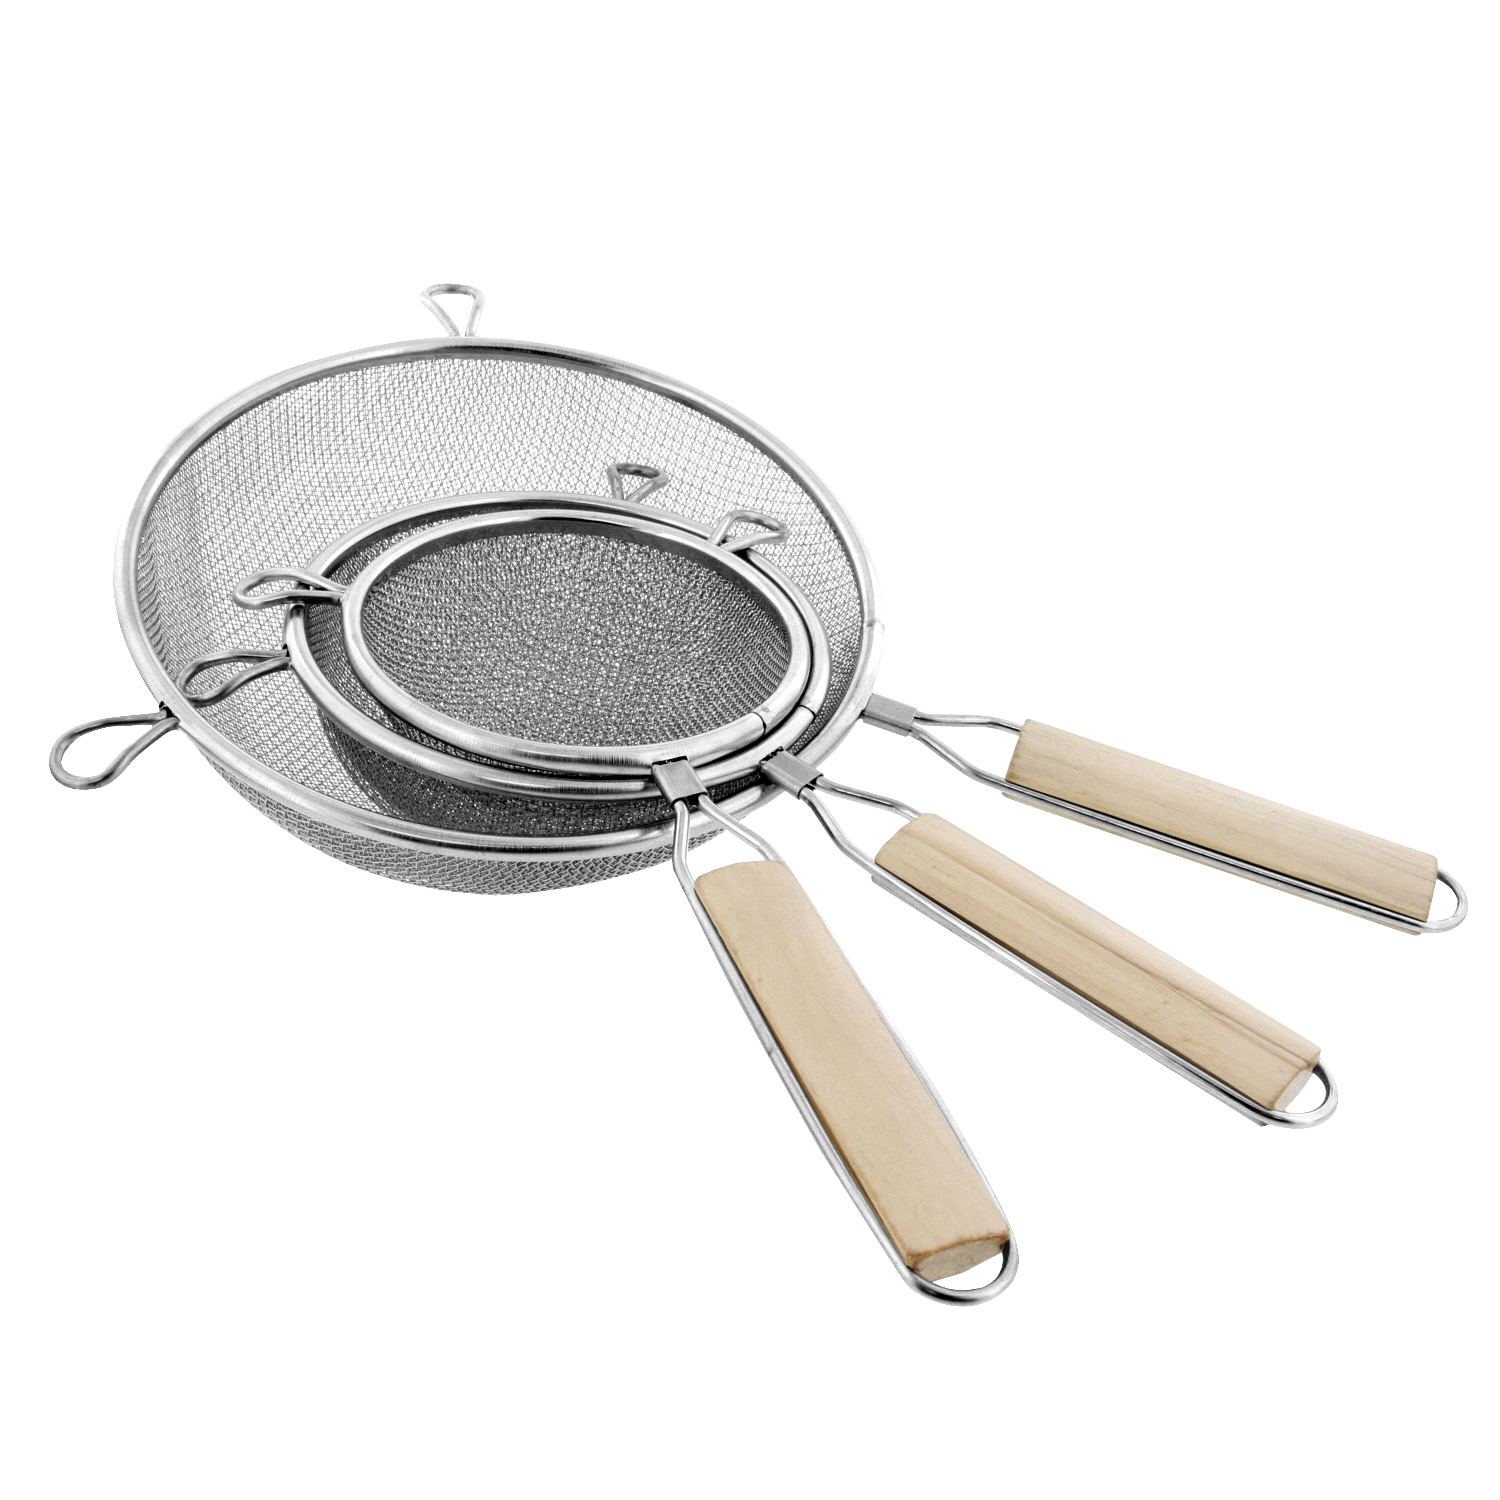 "U.S. Kitchen Supply Set of 3 Double Mesh Extra Fine Stainless Steel Strainers w/ Comfortable Wooden Handles, 4"", 5.5"" 8"""